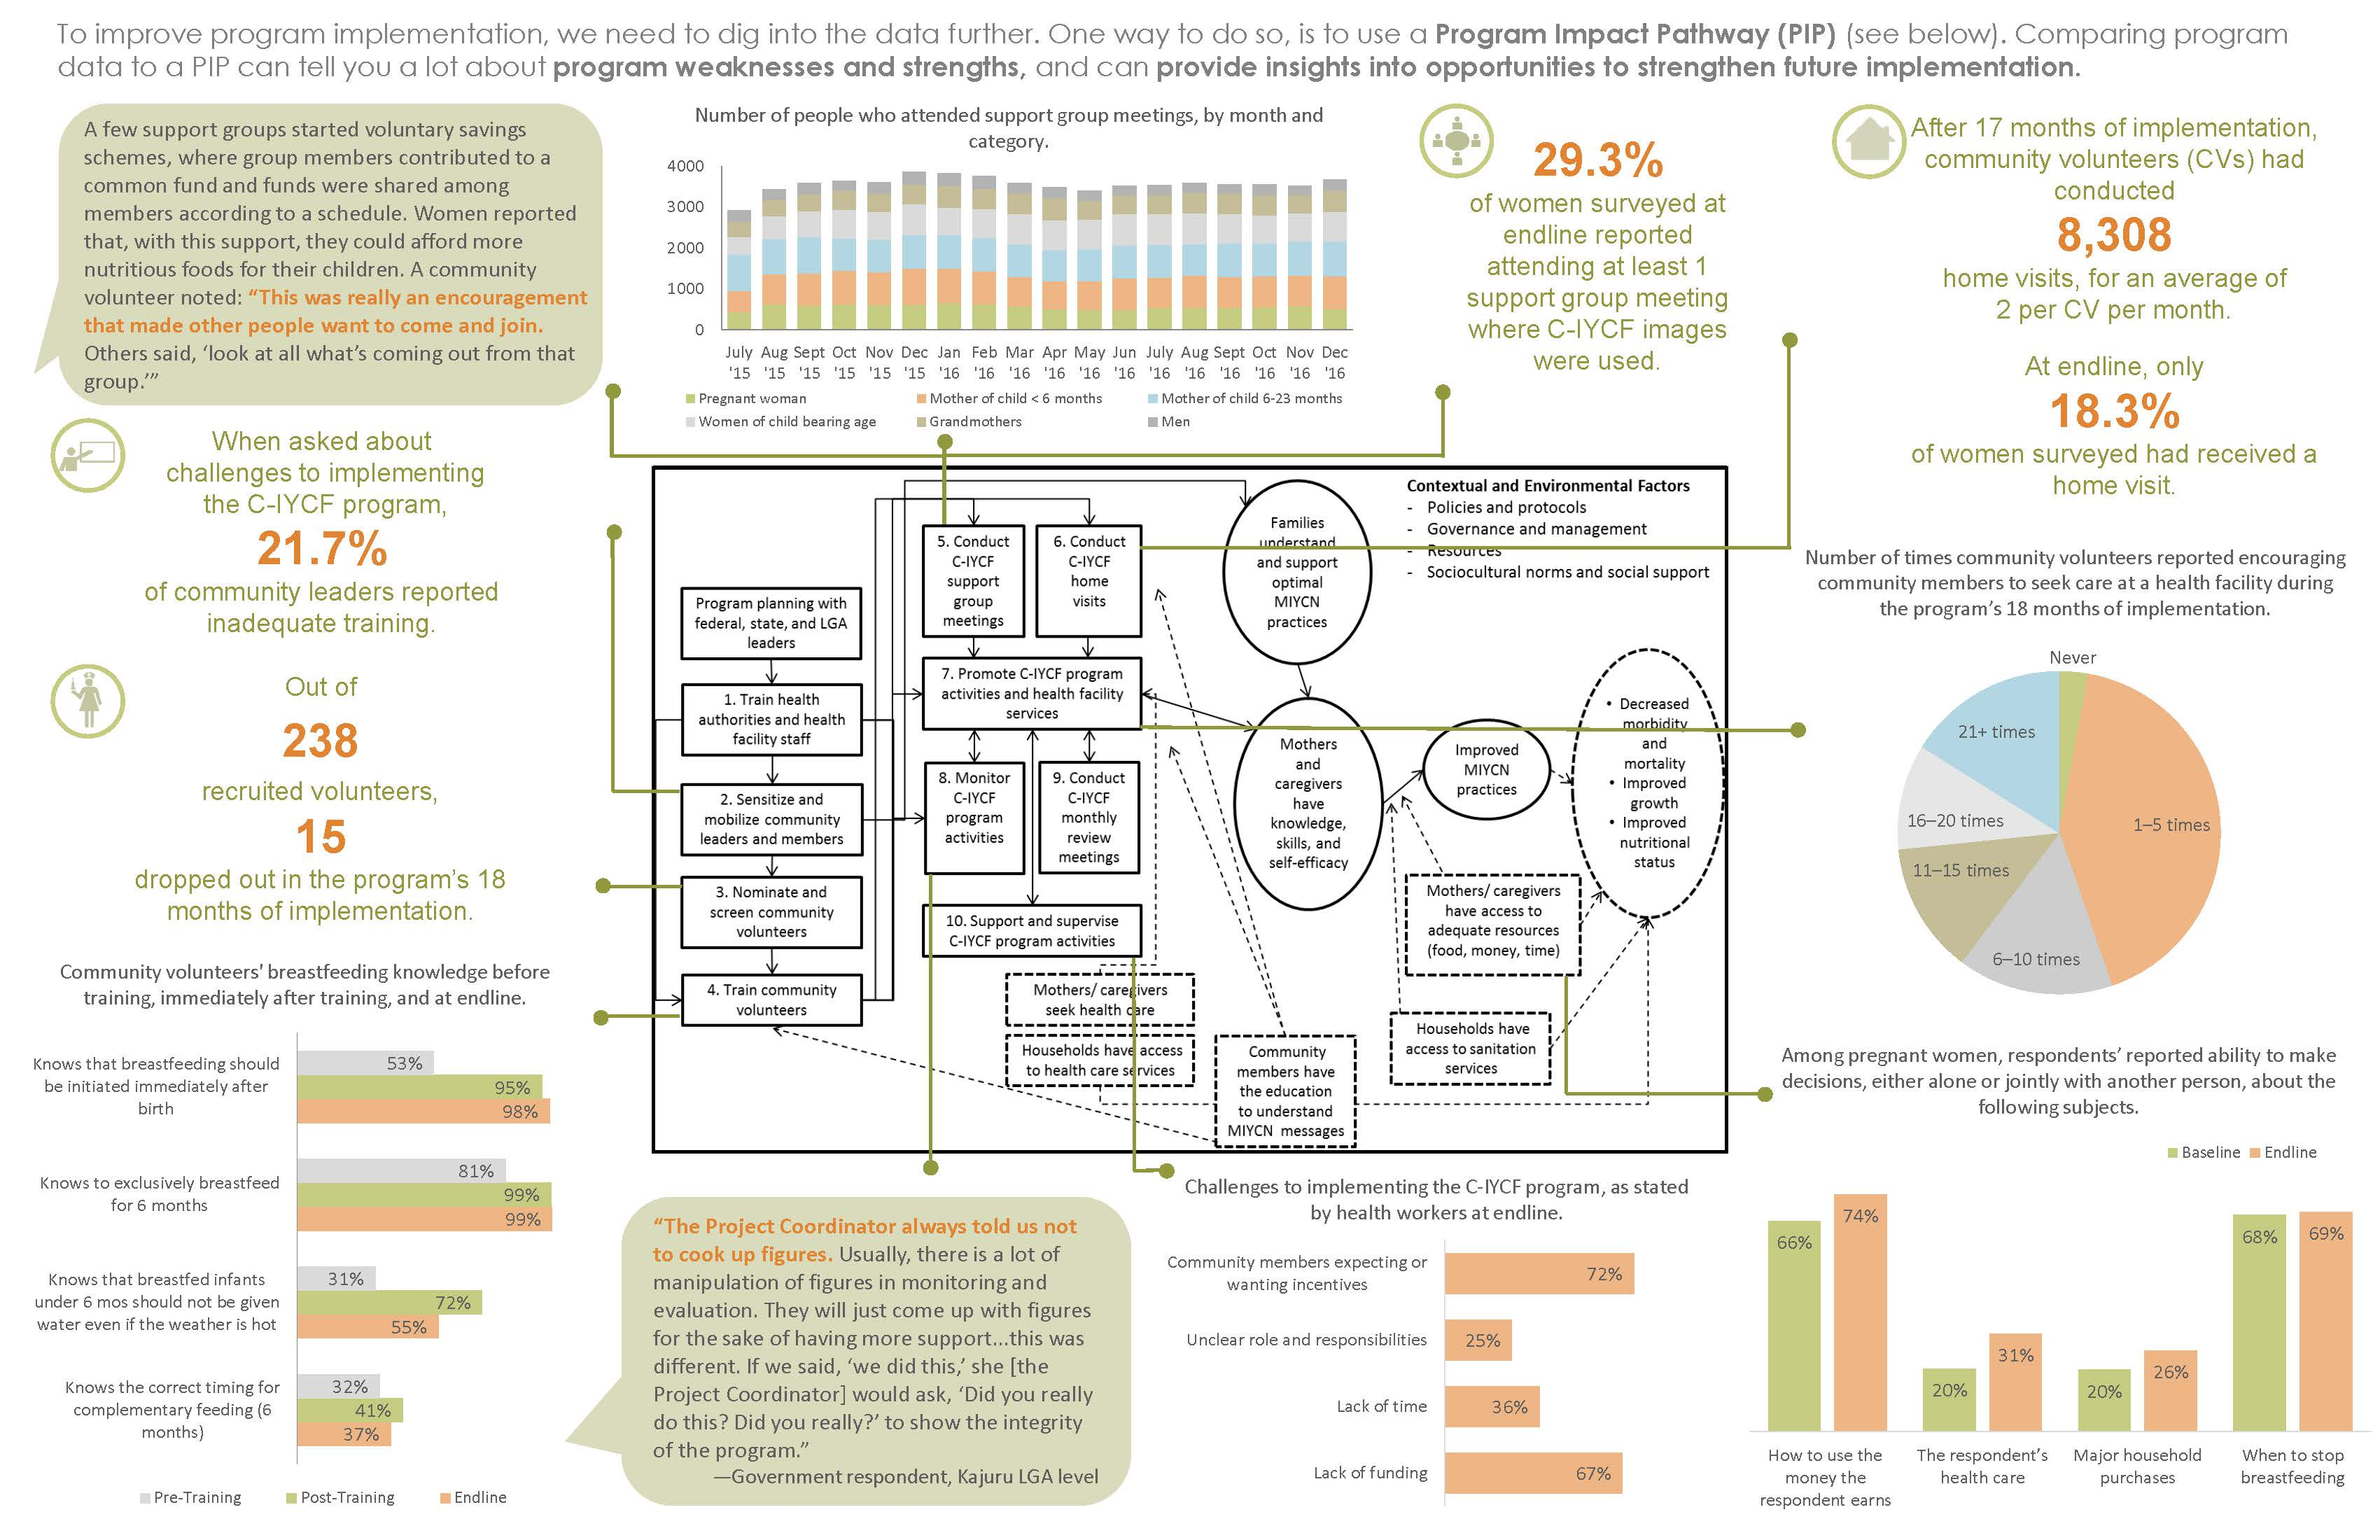 Image of the infographic, see PDF for full alternate text